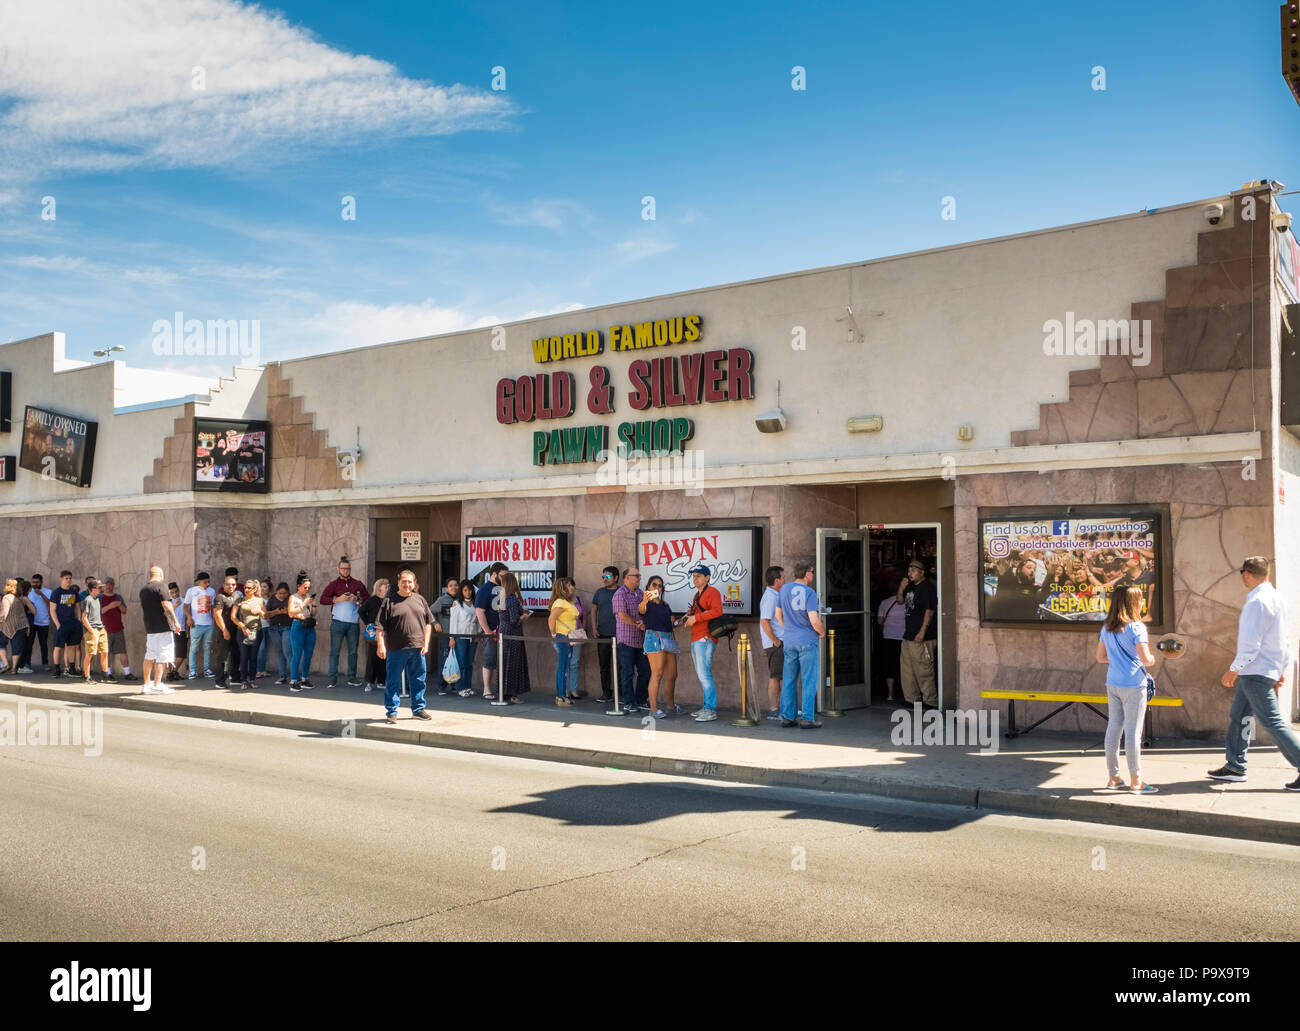 The Gold and Silver Pawn Shop of TV's Pawn Stars fame in Las Vegas, Nevada, USA - Stock Image